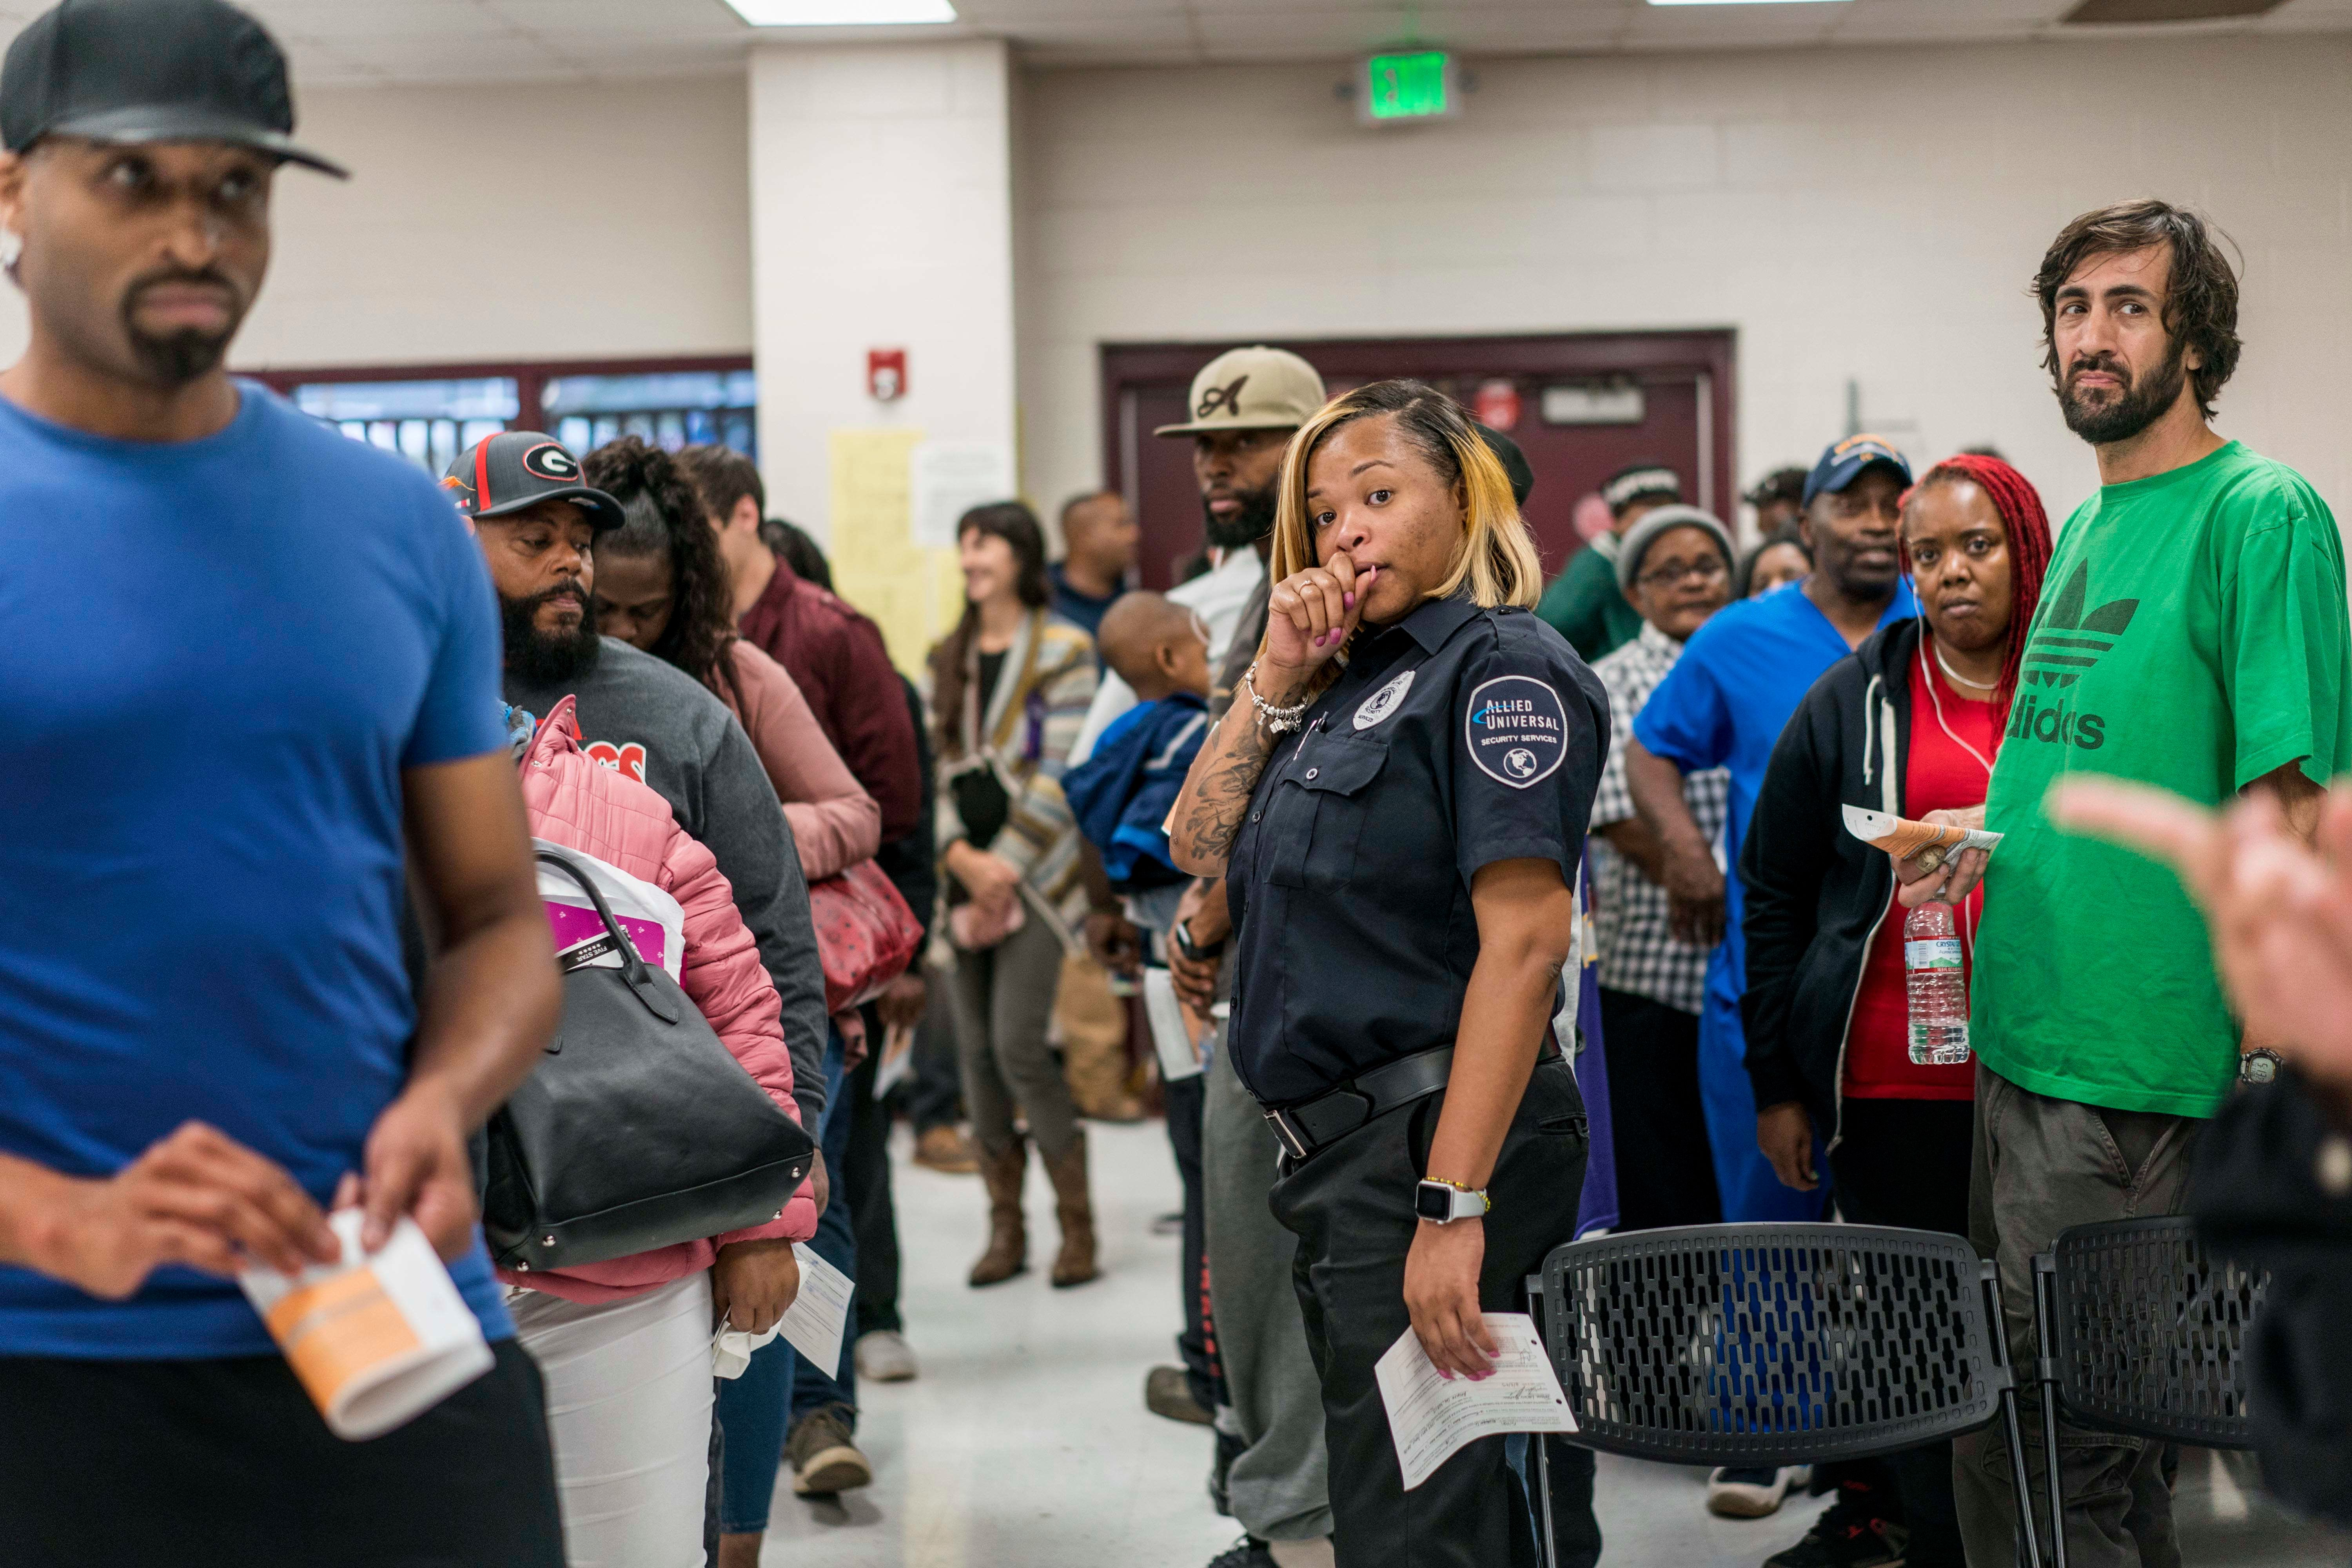 ATLANTA, GEORGIA - On election day at Pittman Park Recreation center polling location thousands of American  voters stand line to vote in Atlanta, Georgia on Tuesday November 6, 2018. The polling place received a limited amount of voting machines, three to begin the day and five where added later. But still the amount of voting machines can not handle the amount of voters showing up to vote. (Photo by Melina Mara/The Washington Post via Getty Images)